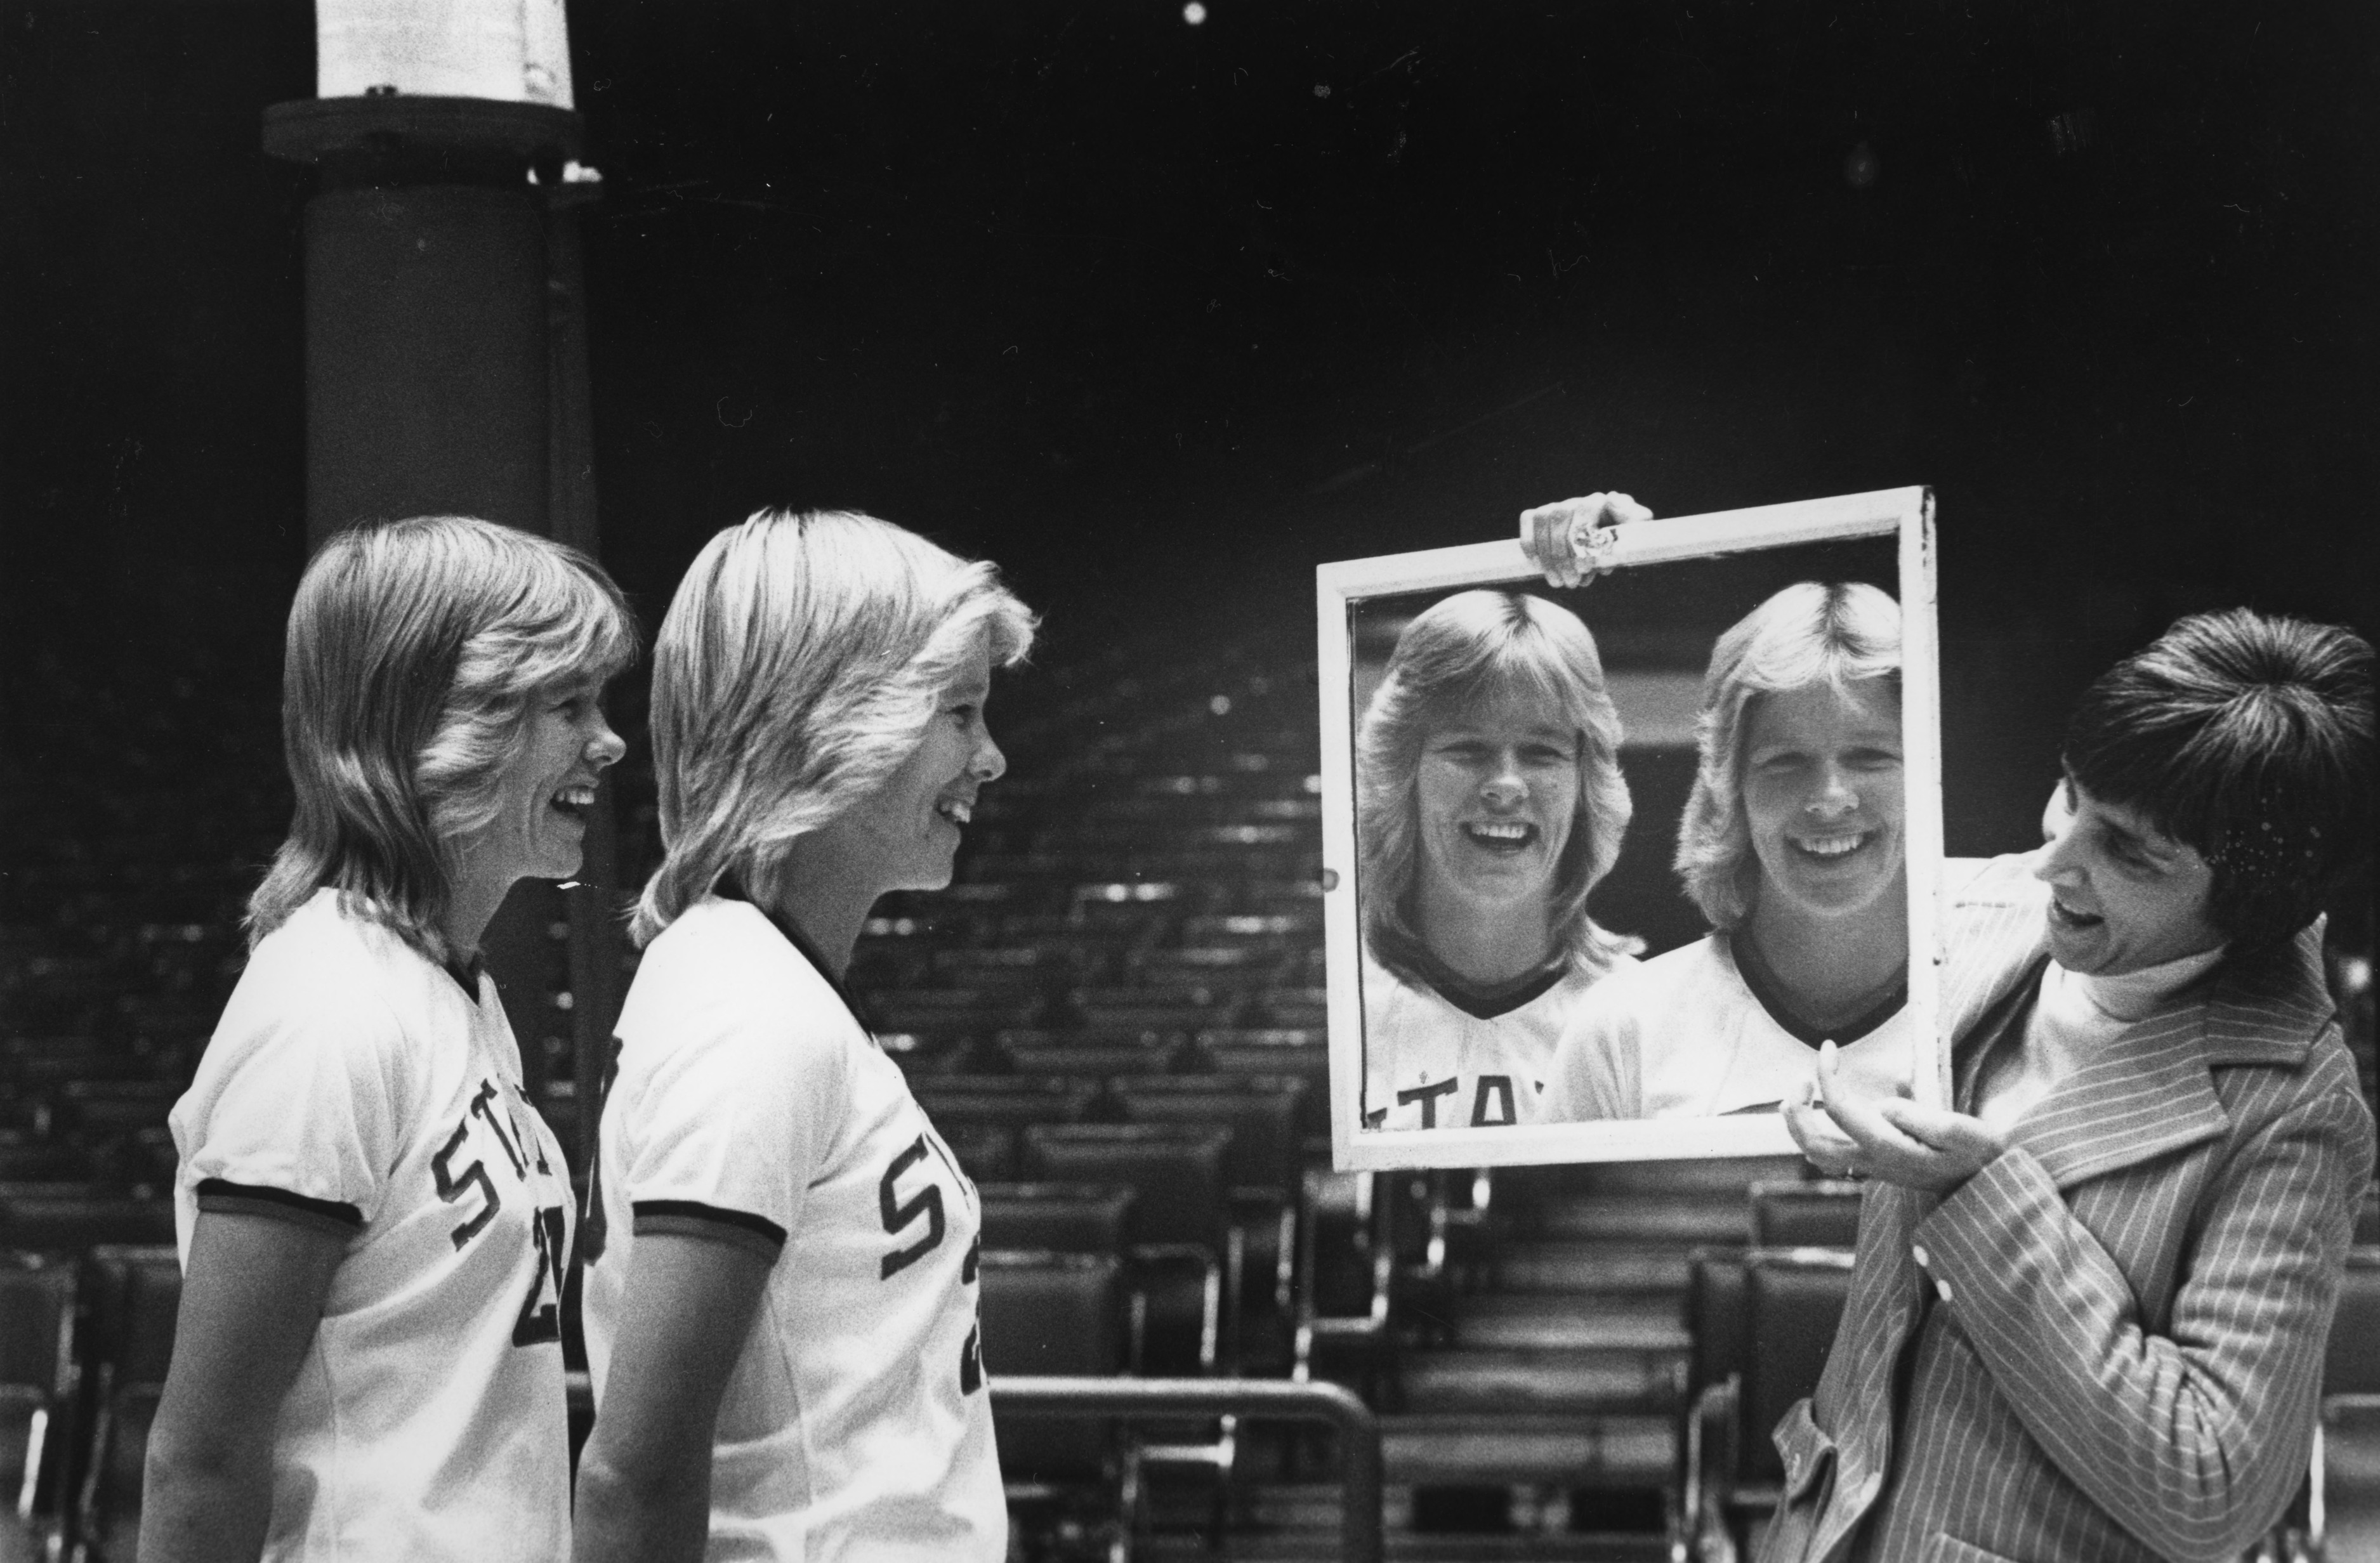 Faye and Kaye Young look at their reflections in mirror held by Head Coach Kay Yow